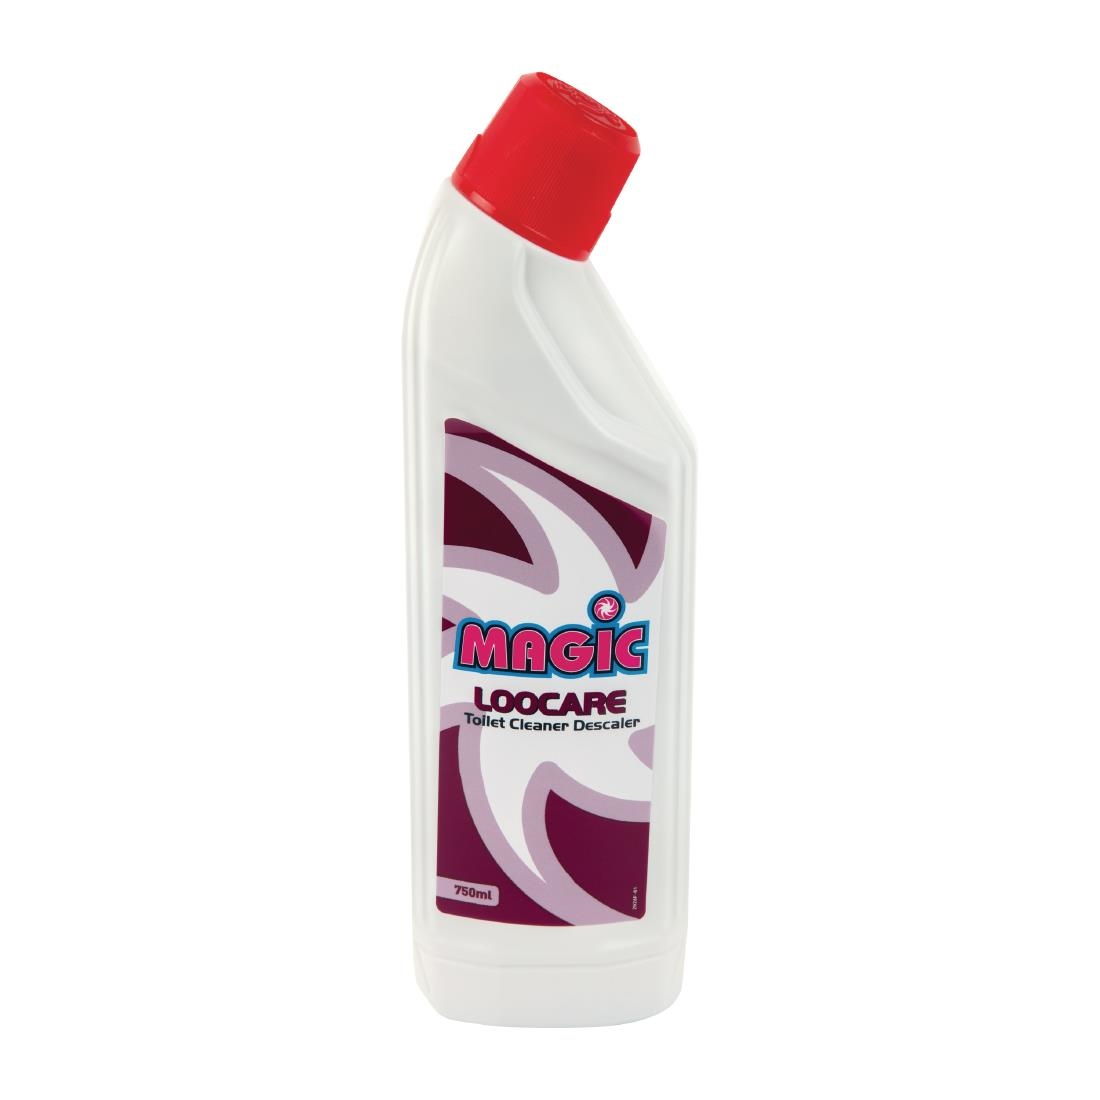 Image of Magic Loocare Toilet Cleaner and Descaler Ready To Use 750ml (12 Pack) Pack of 12